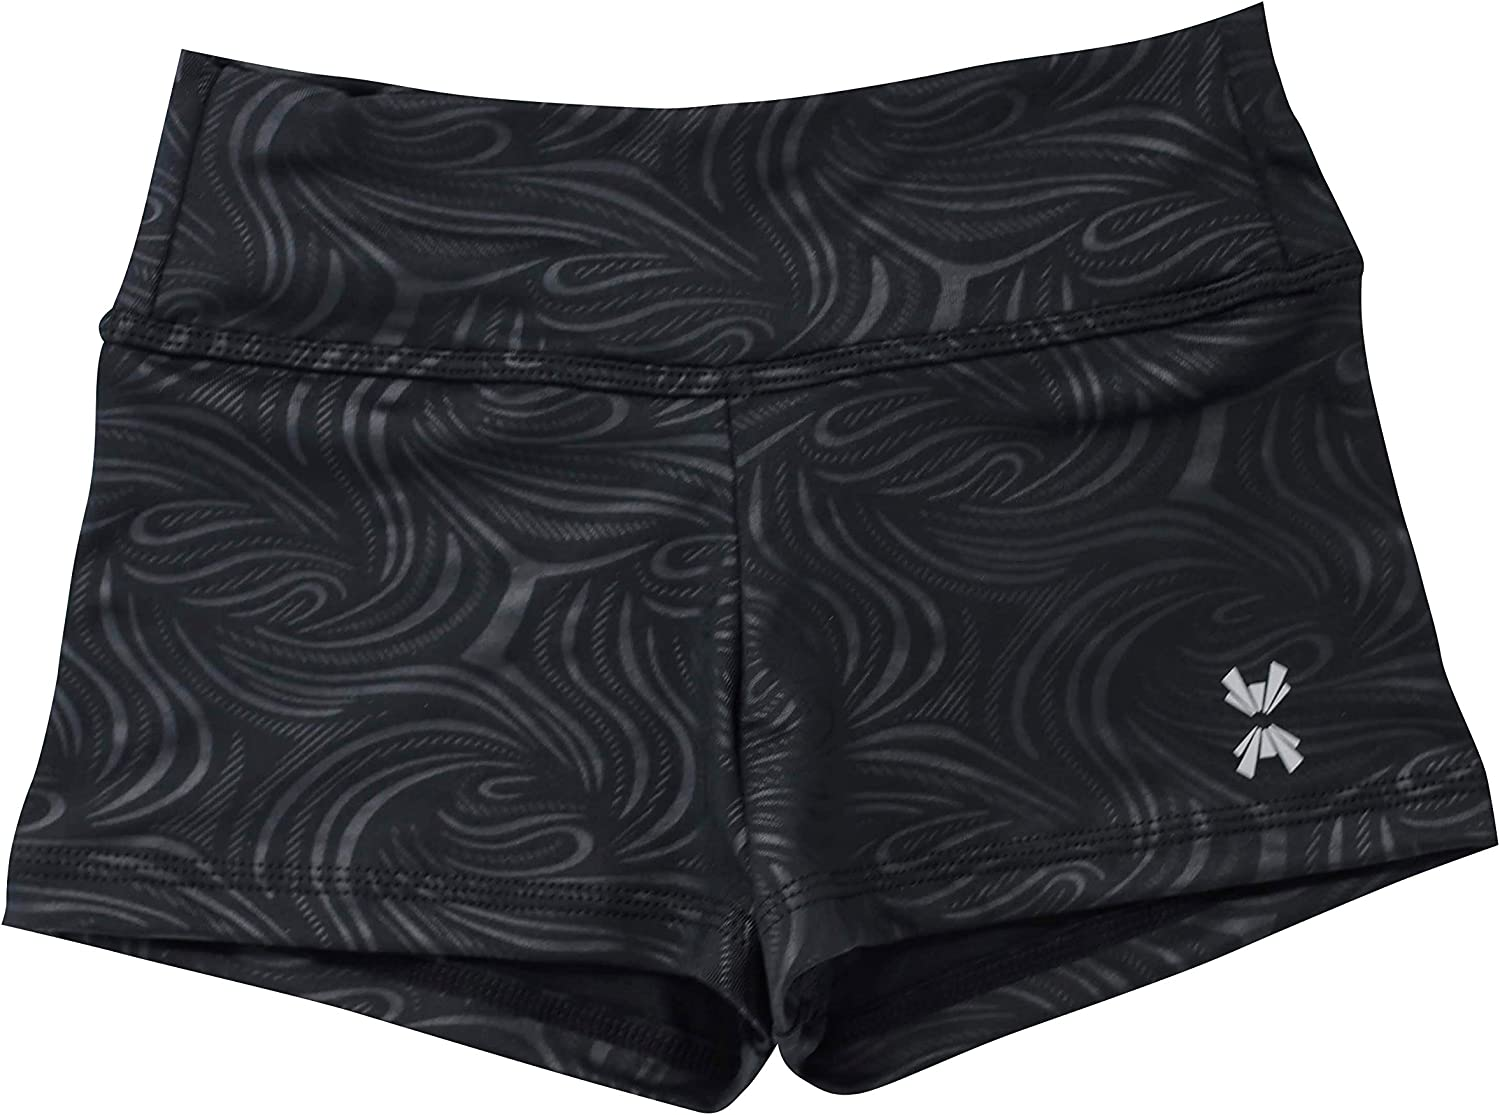 United All Around Gymnastic /& Dance Shorts for Girls Little Girl /& Youth and Toddler